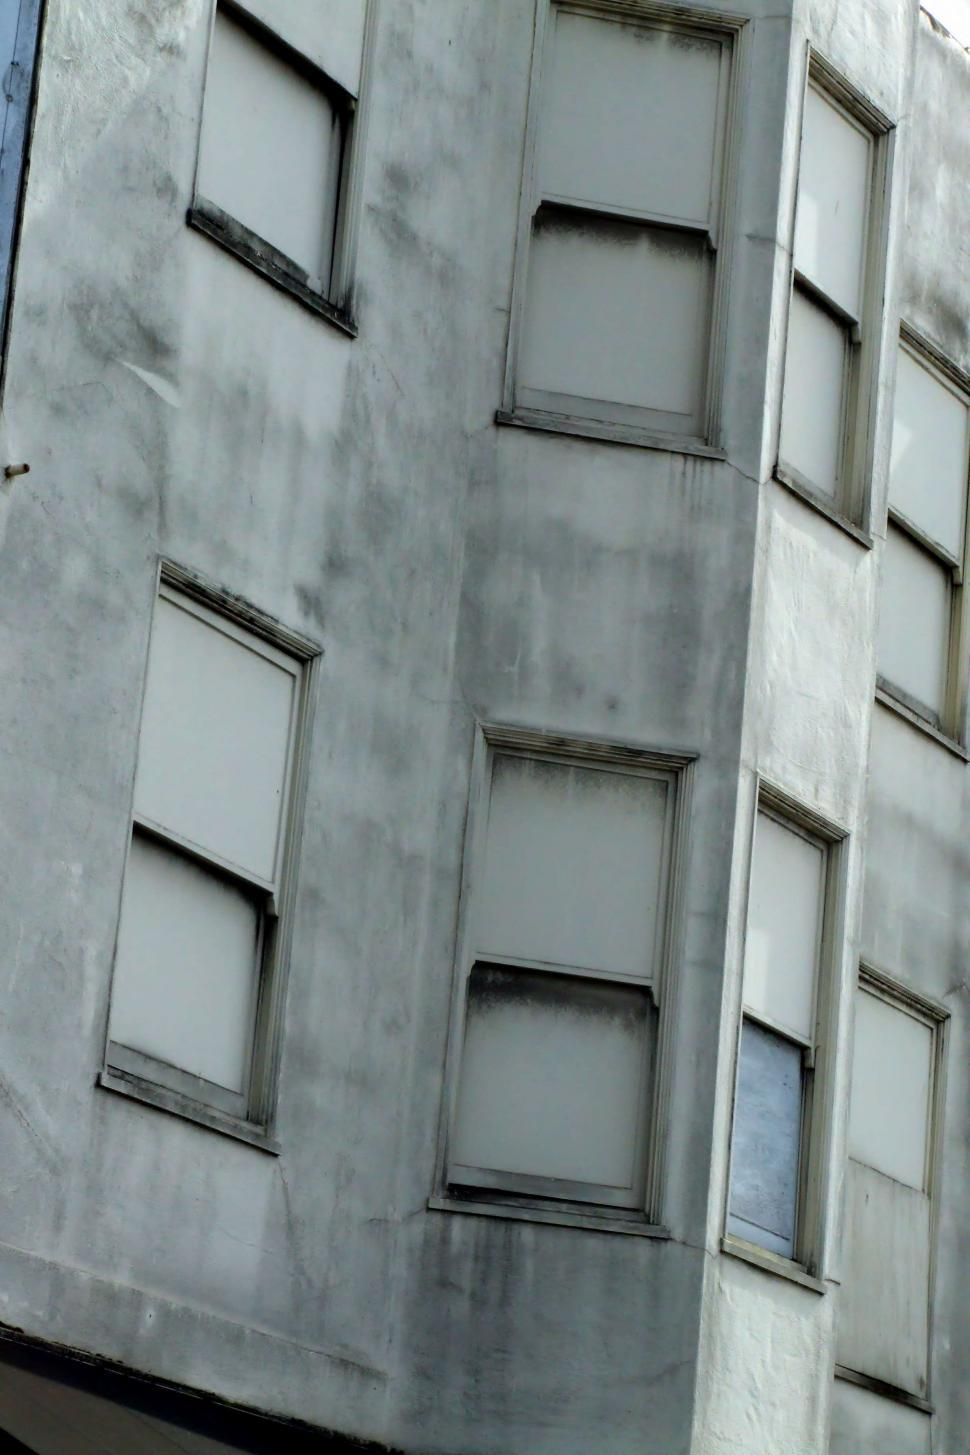 Download Free Stock HD Photo of Buildings and Structures Online